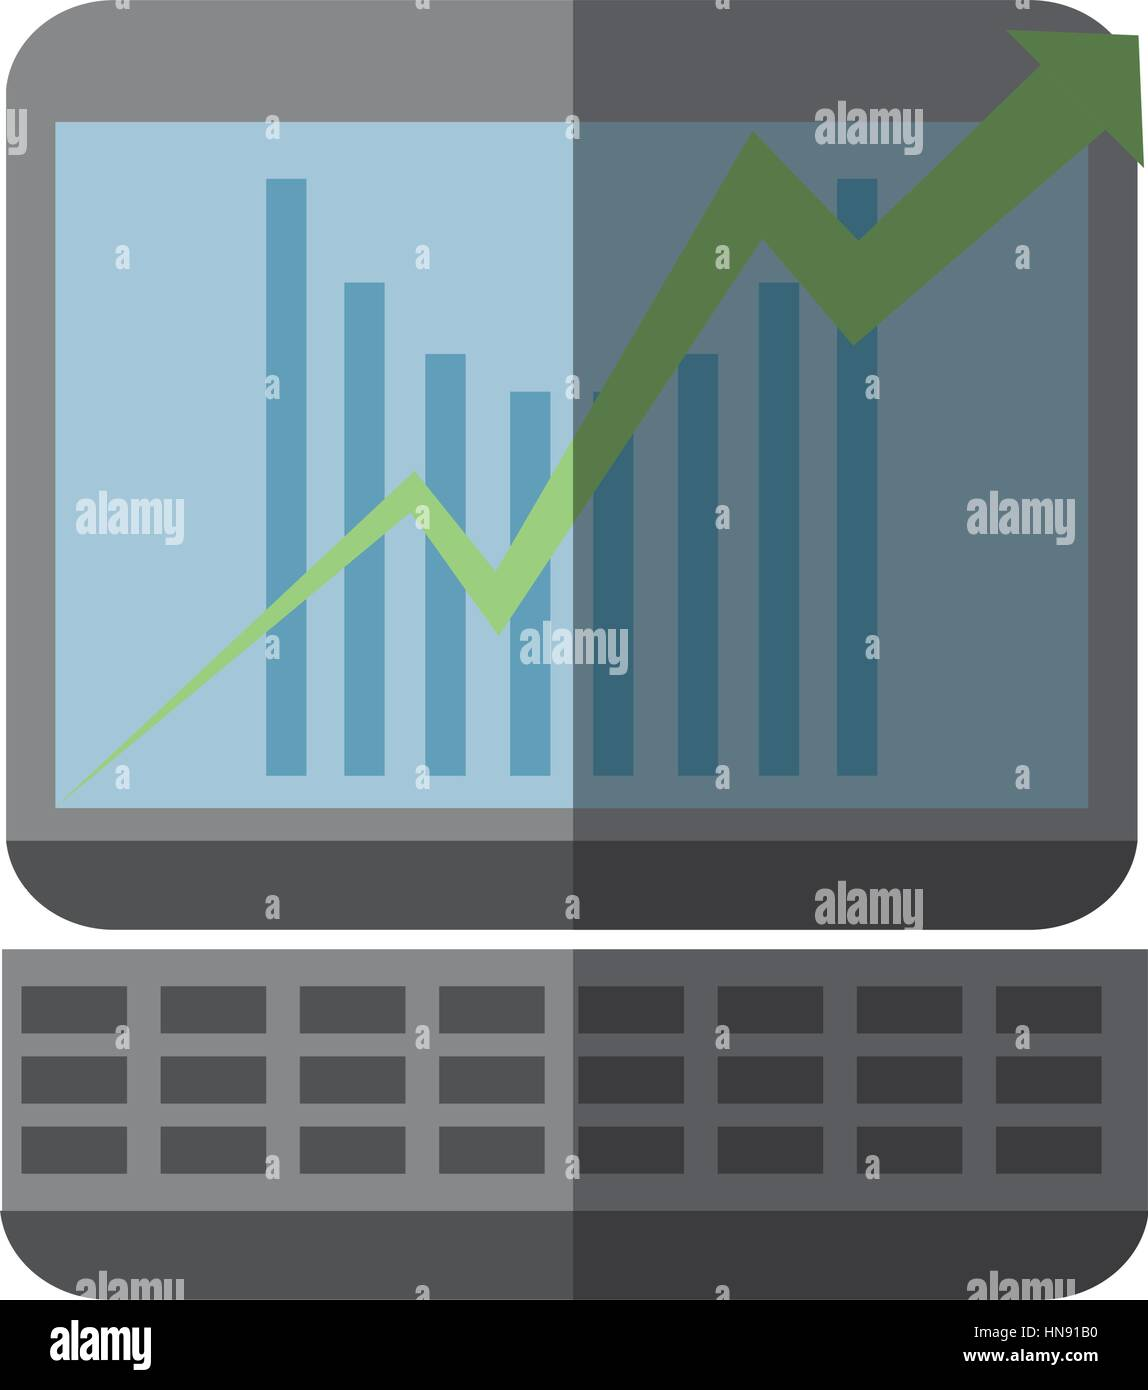 computer with business related icon image, vector illustration - Stock Image